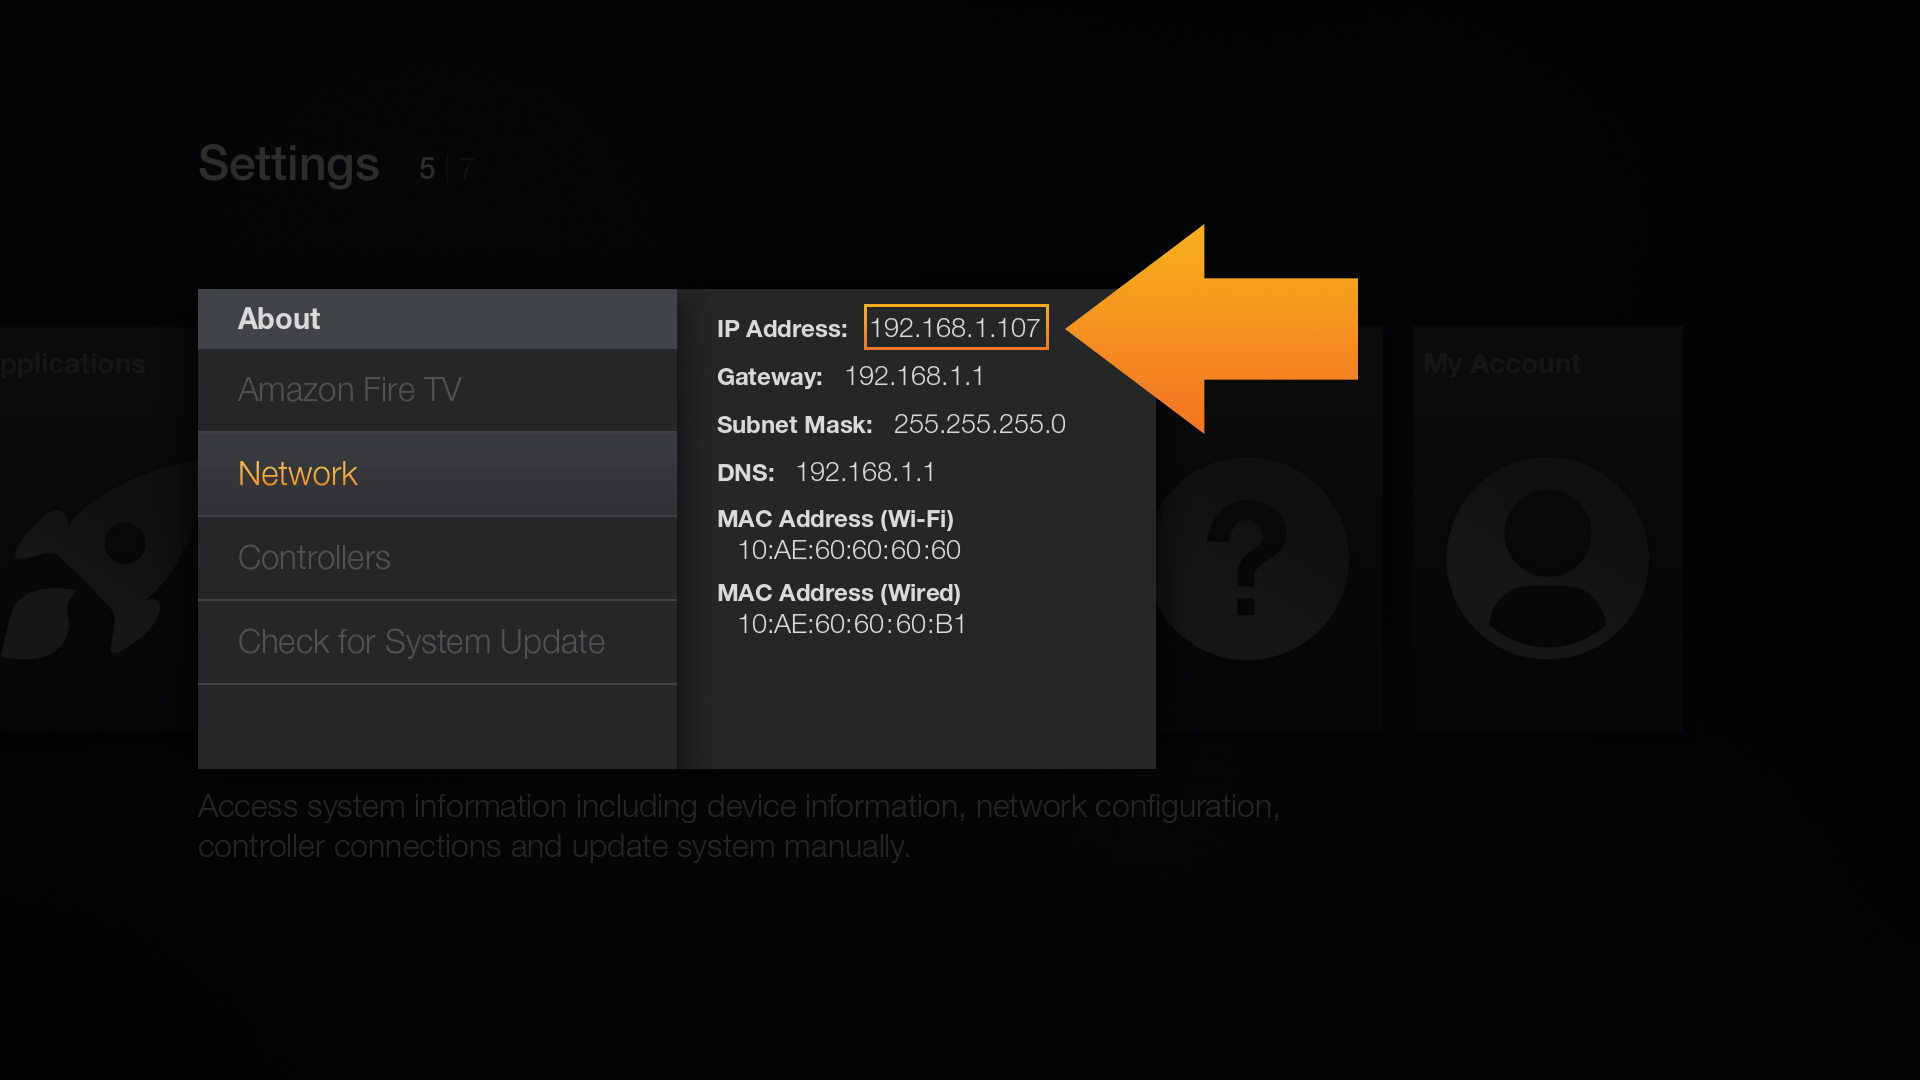 How to Sideload Apps onto an Amazon Fire TV or Fire TV Stick using